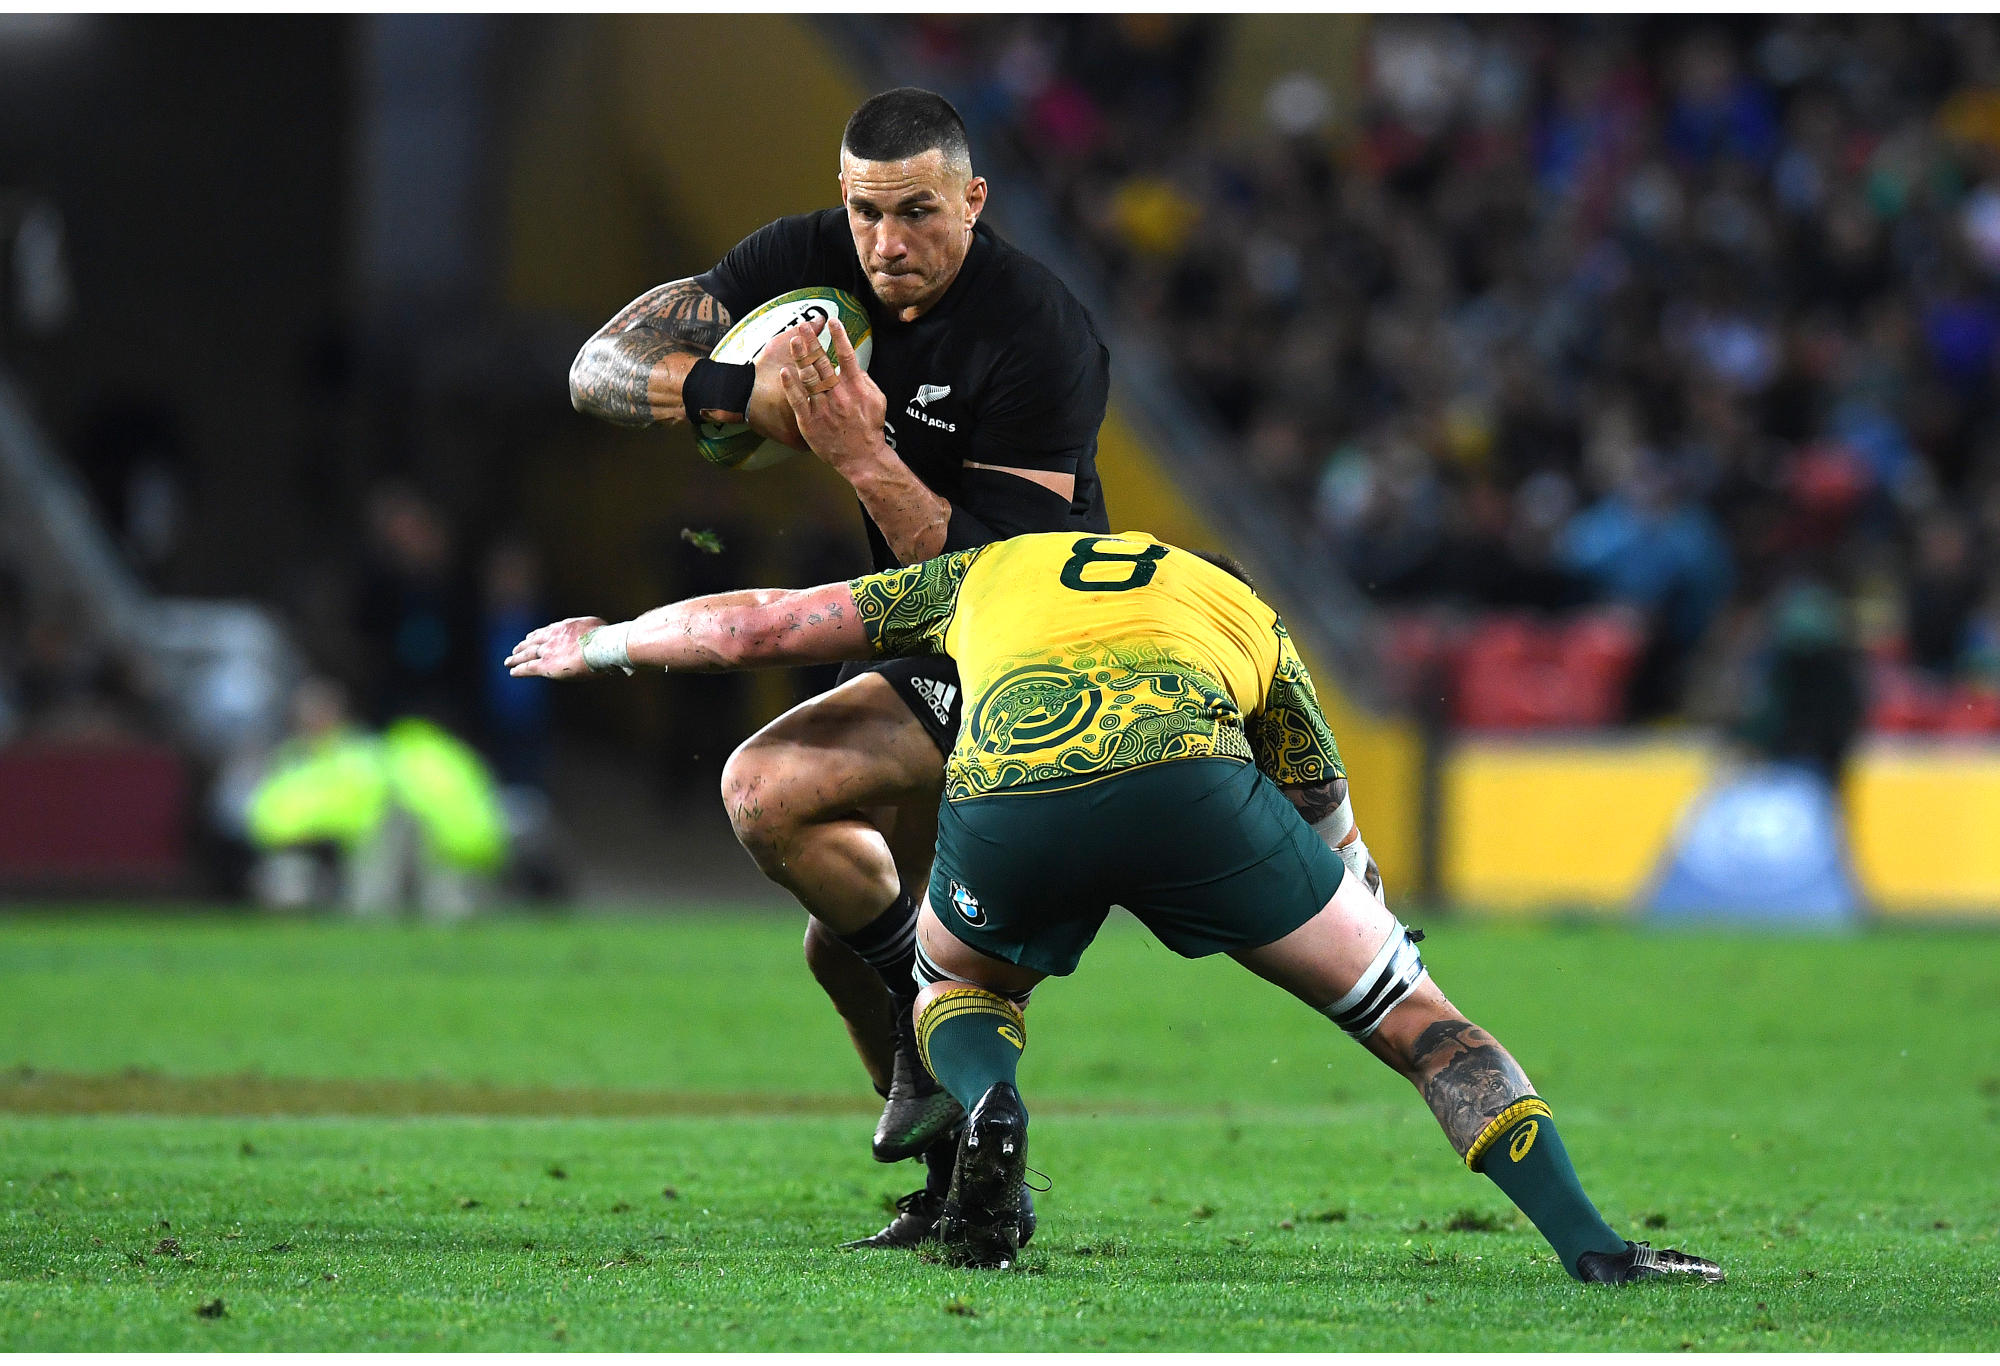 Sonny Bill Williams of the All Blacks is tackled by Sean McMahon of the Wallabies during the third Bledisloe Cup match against the Wallabies.